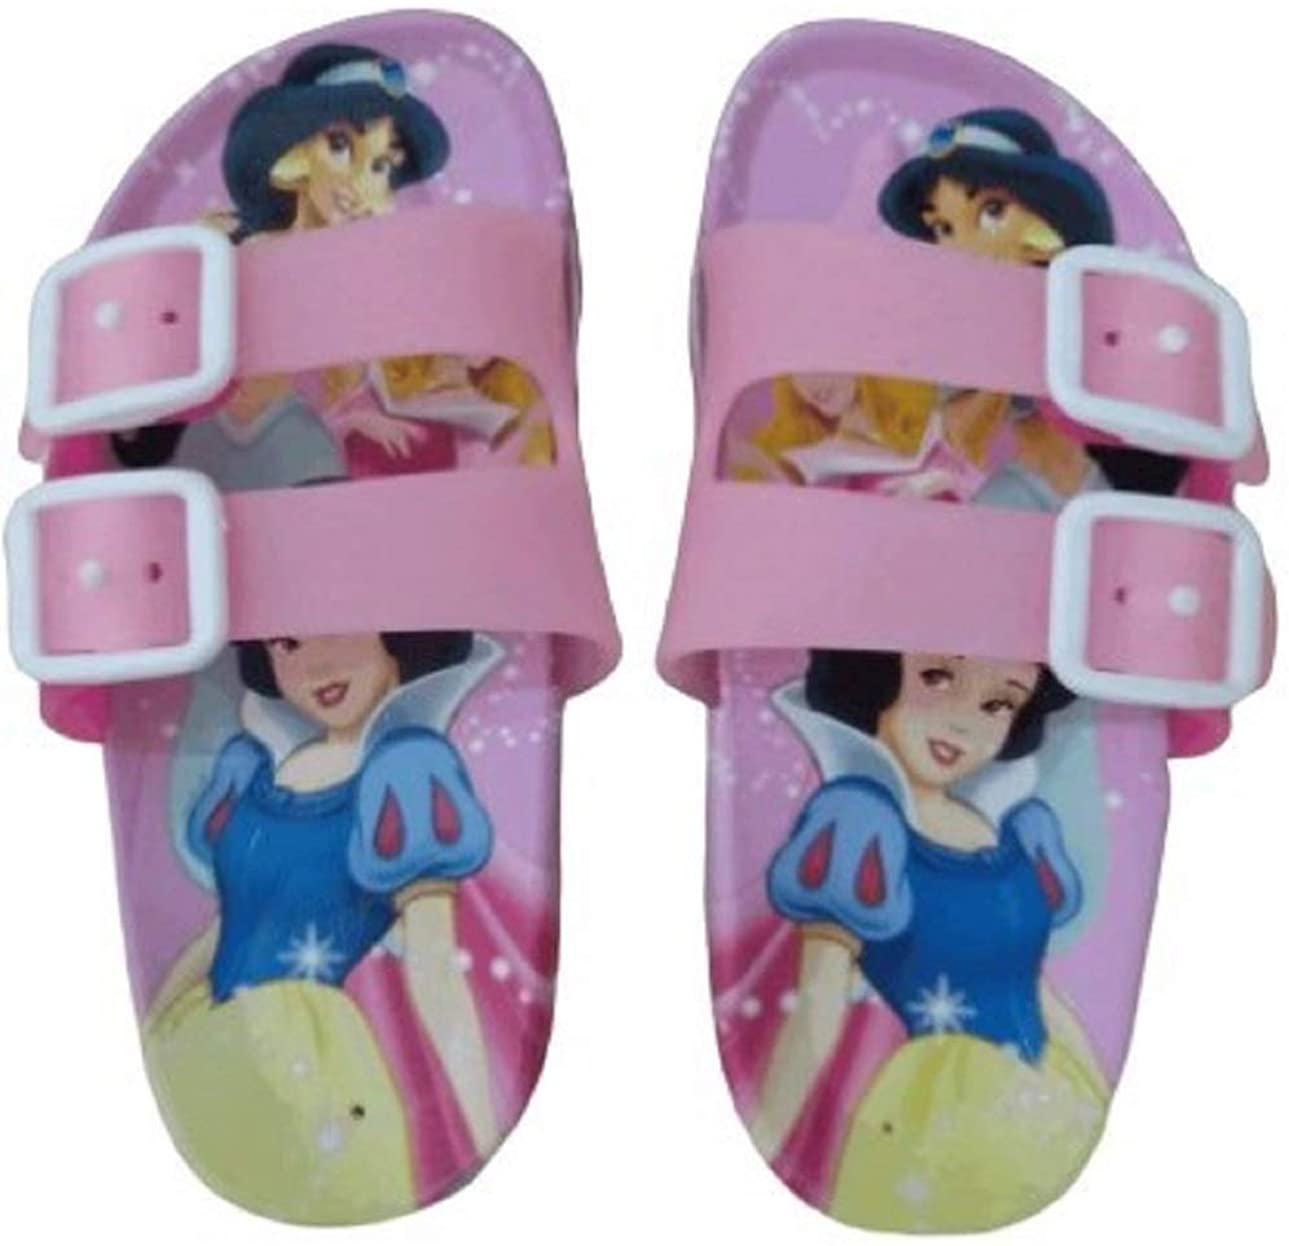 Size 9.5 Princess Summer slippers for girls Princess Jasmine and Snow White